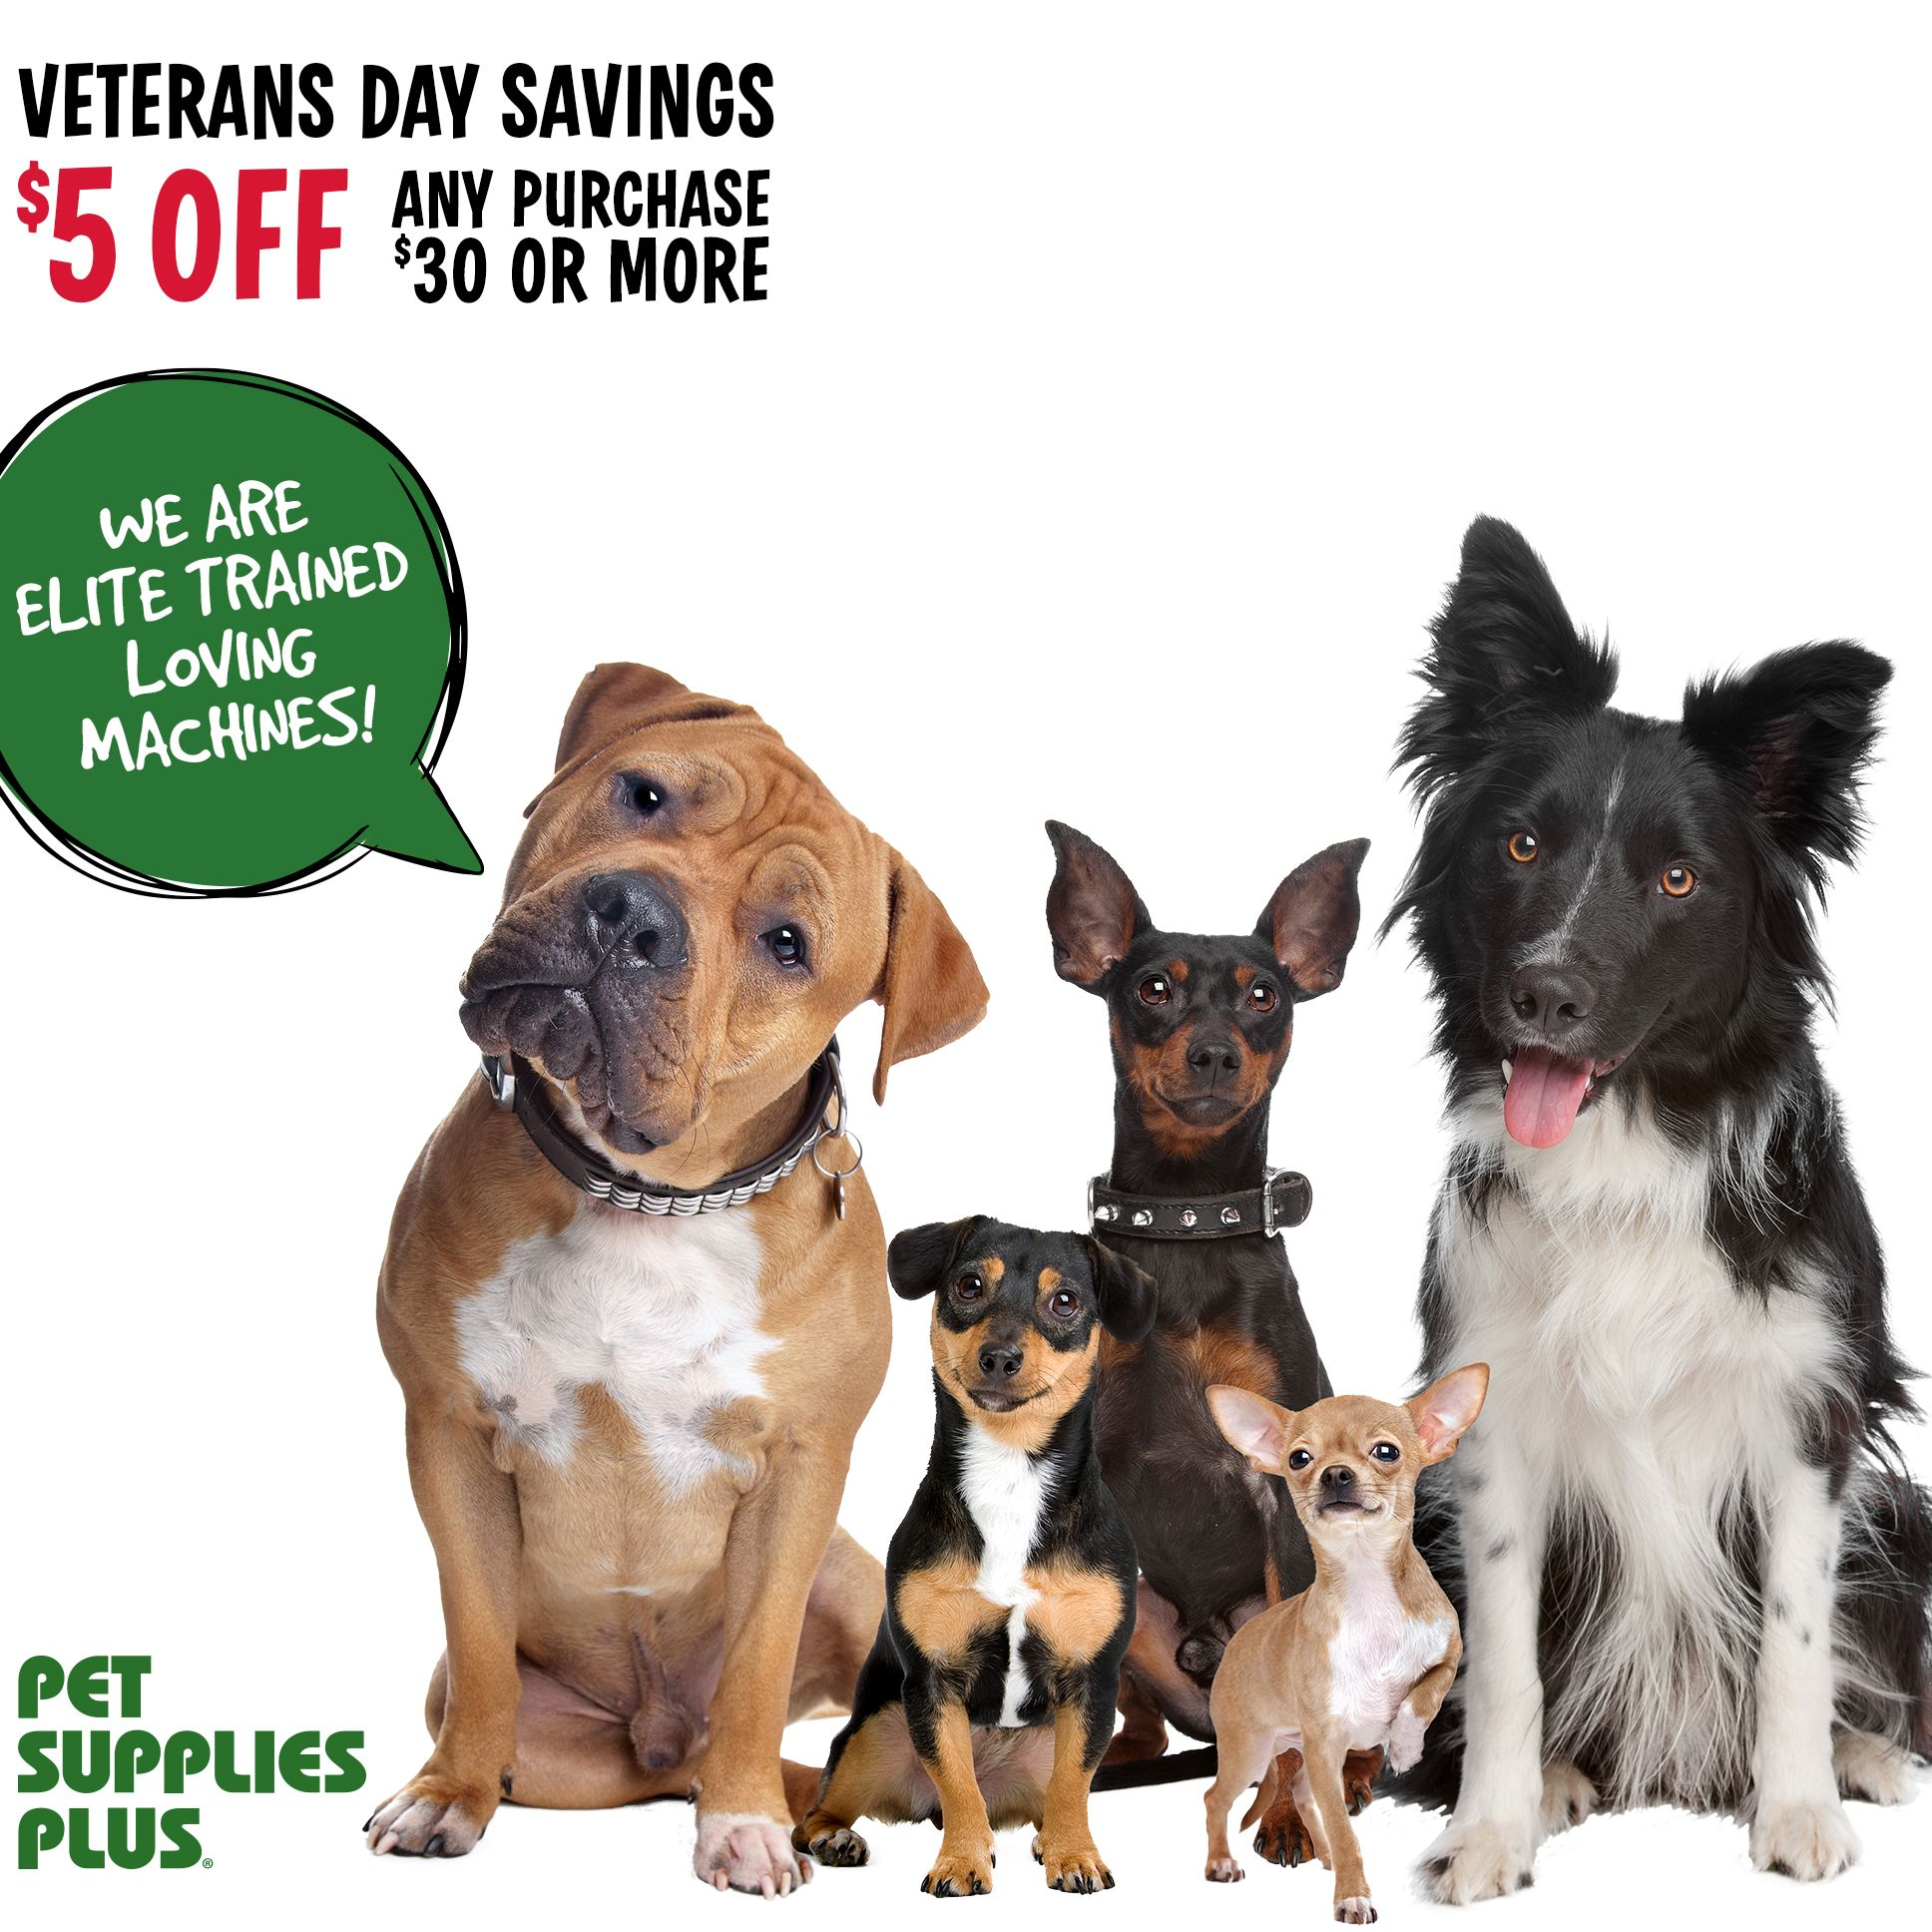 Now through Veterans Day, we're giving our neighbors the